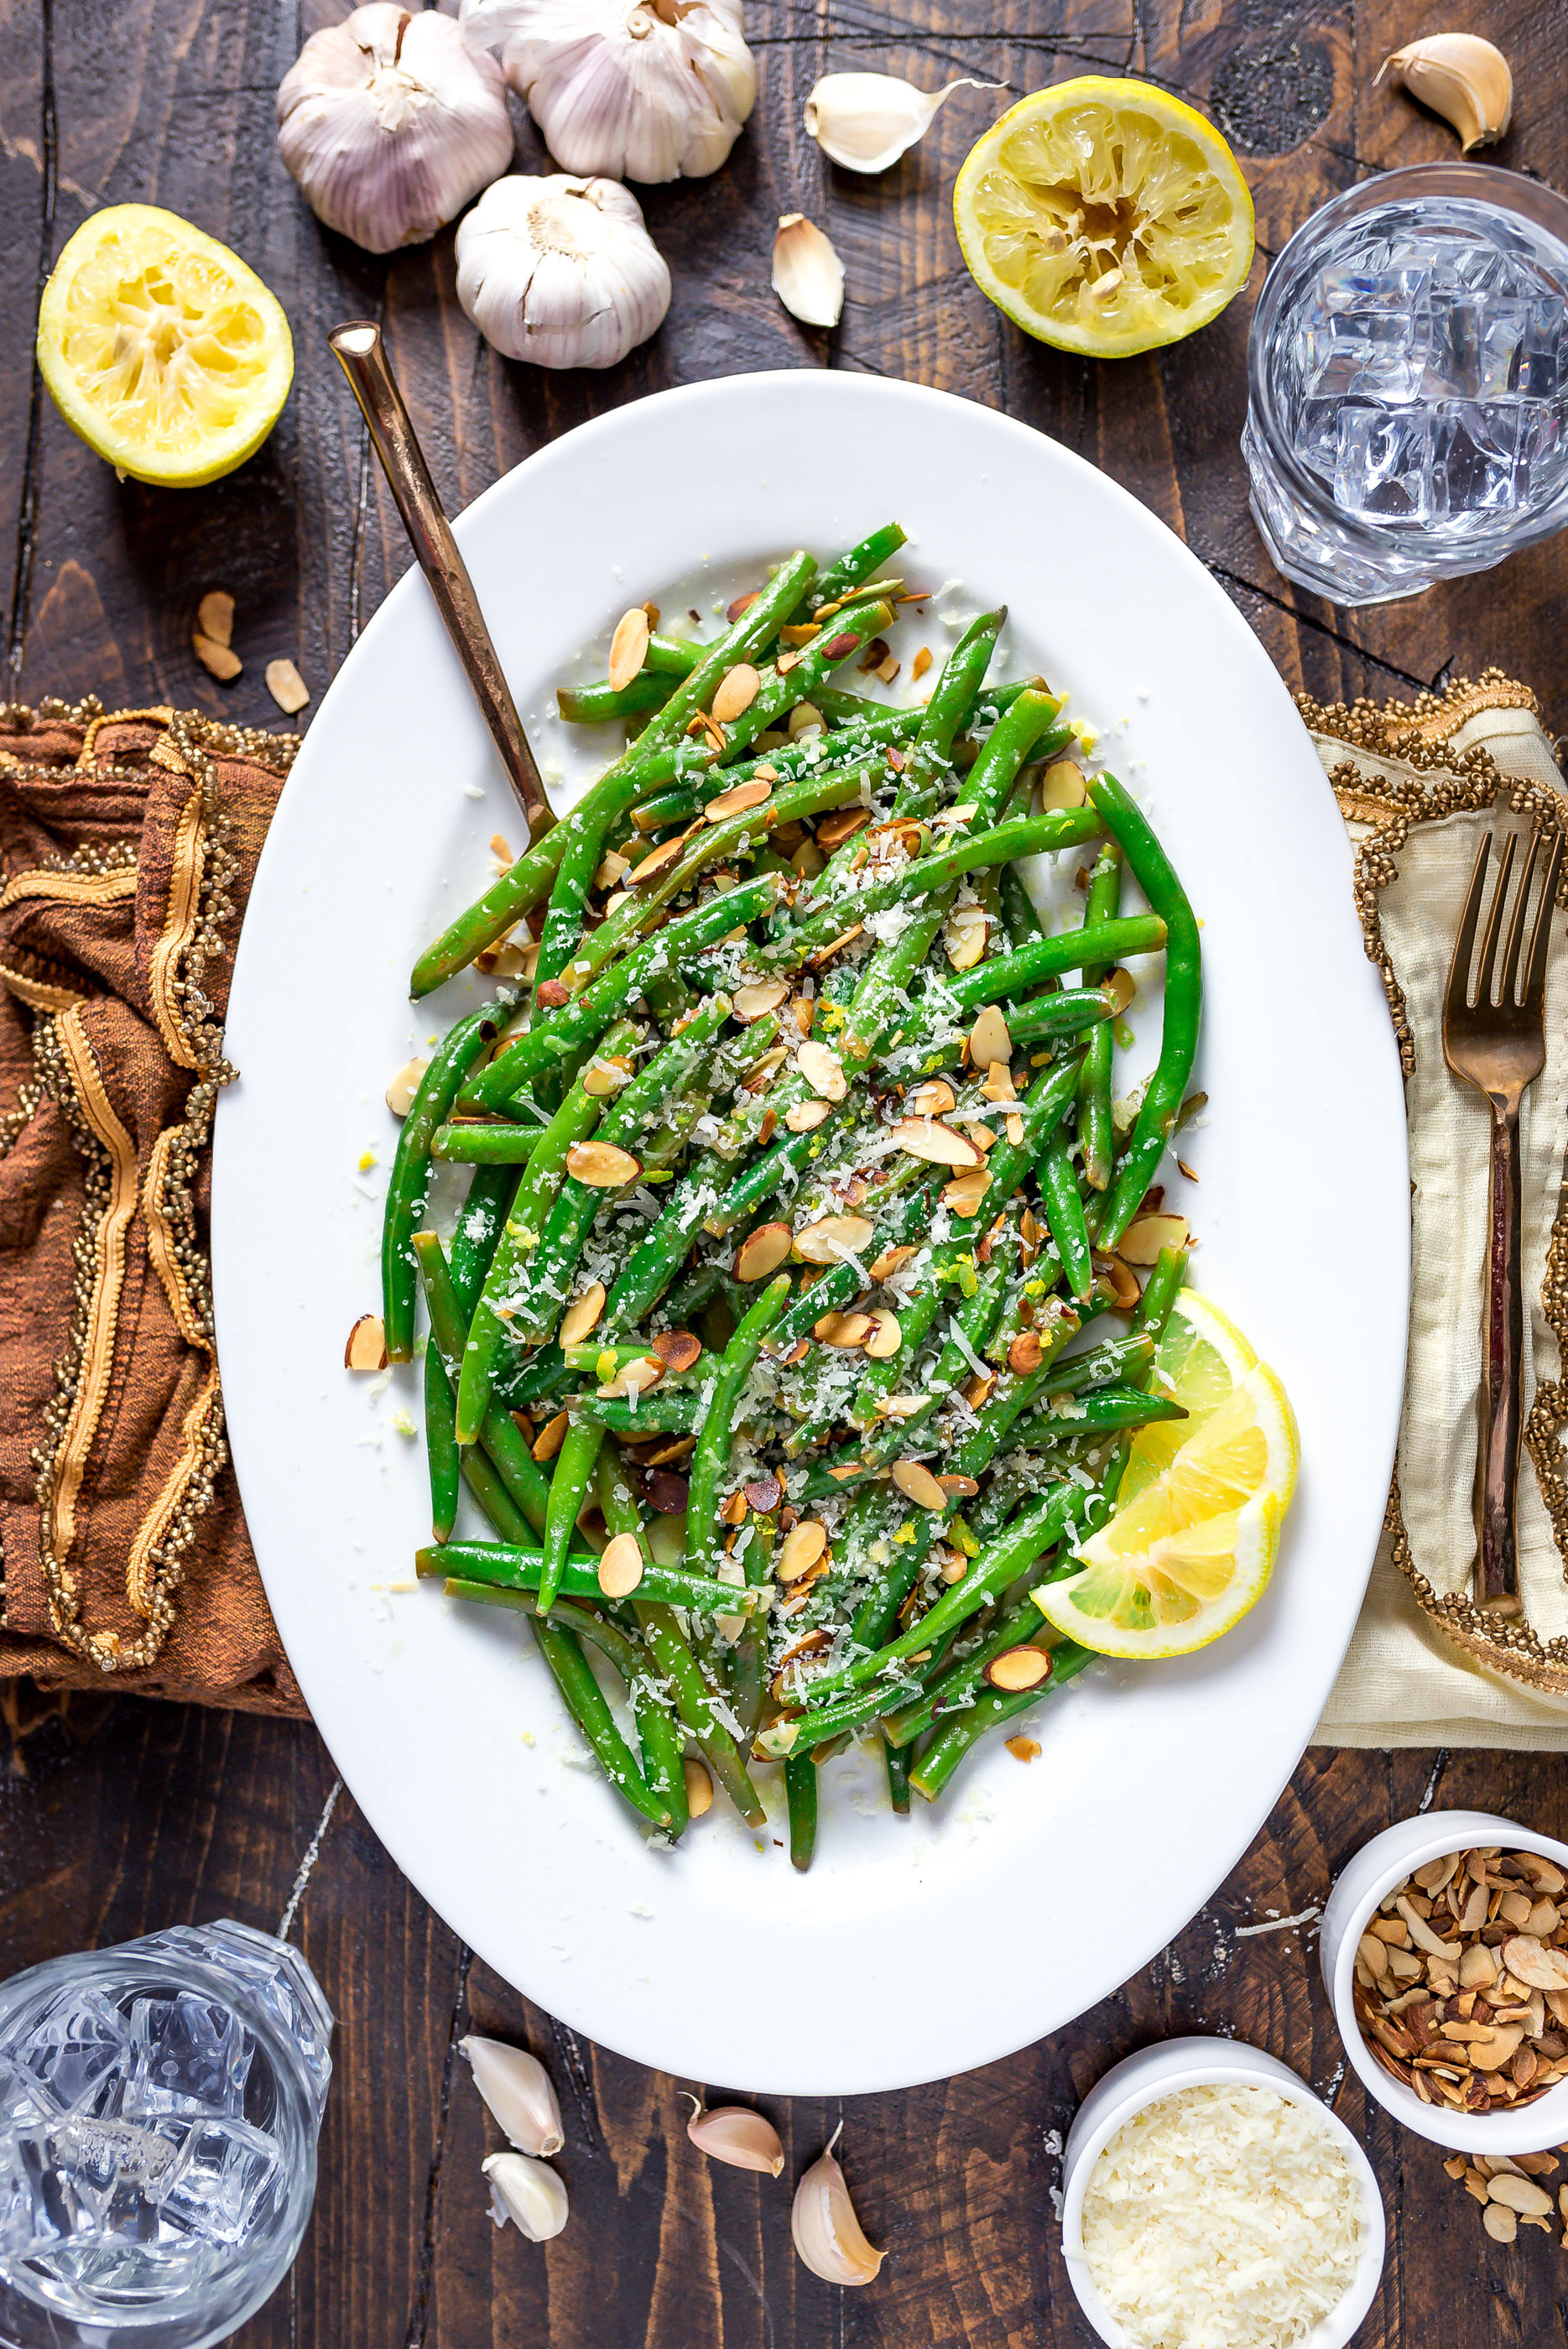 Browned Butter Lemon-Garlic Green Beans and lemon slices on a white oval-shaped plate.